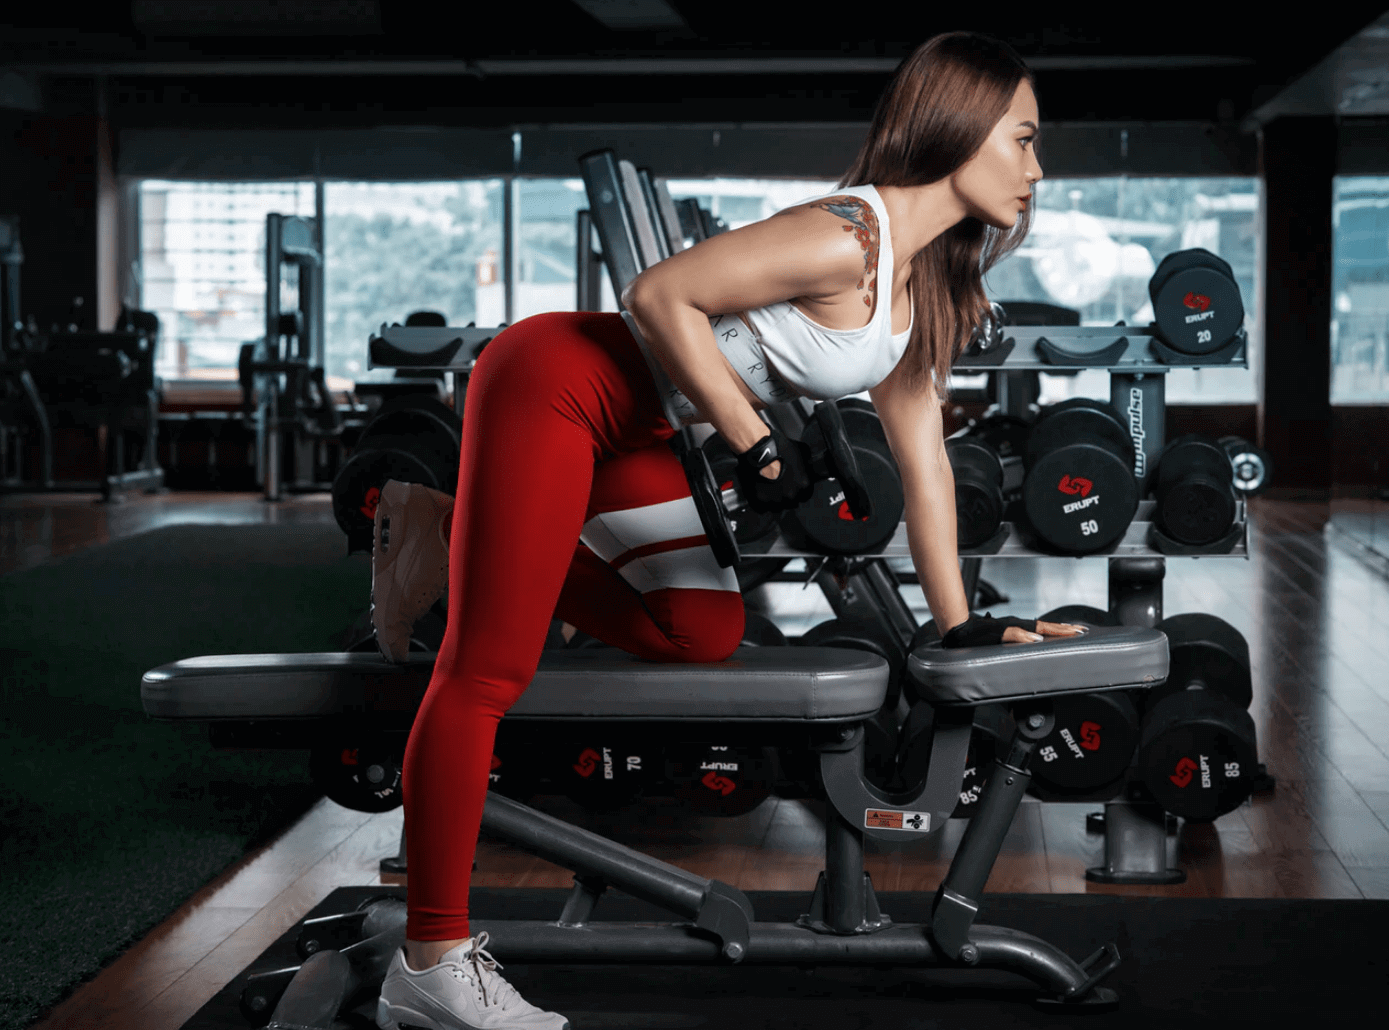 Girl Doing Gym on Bench